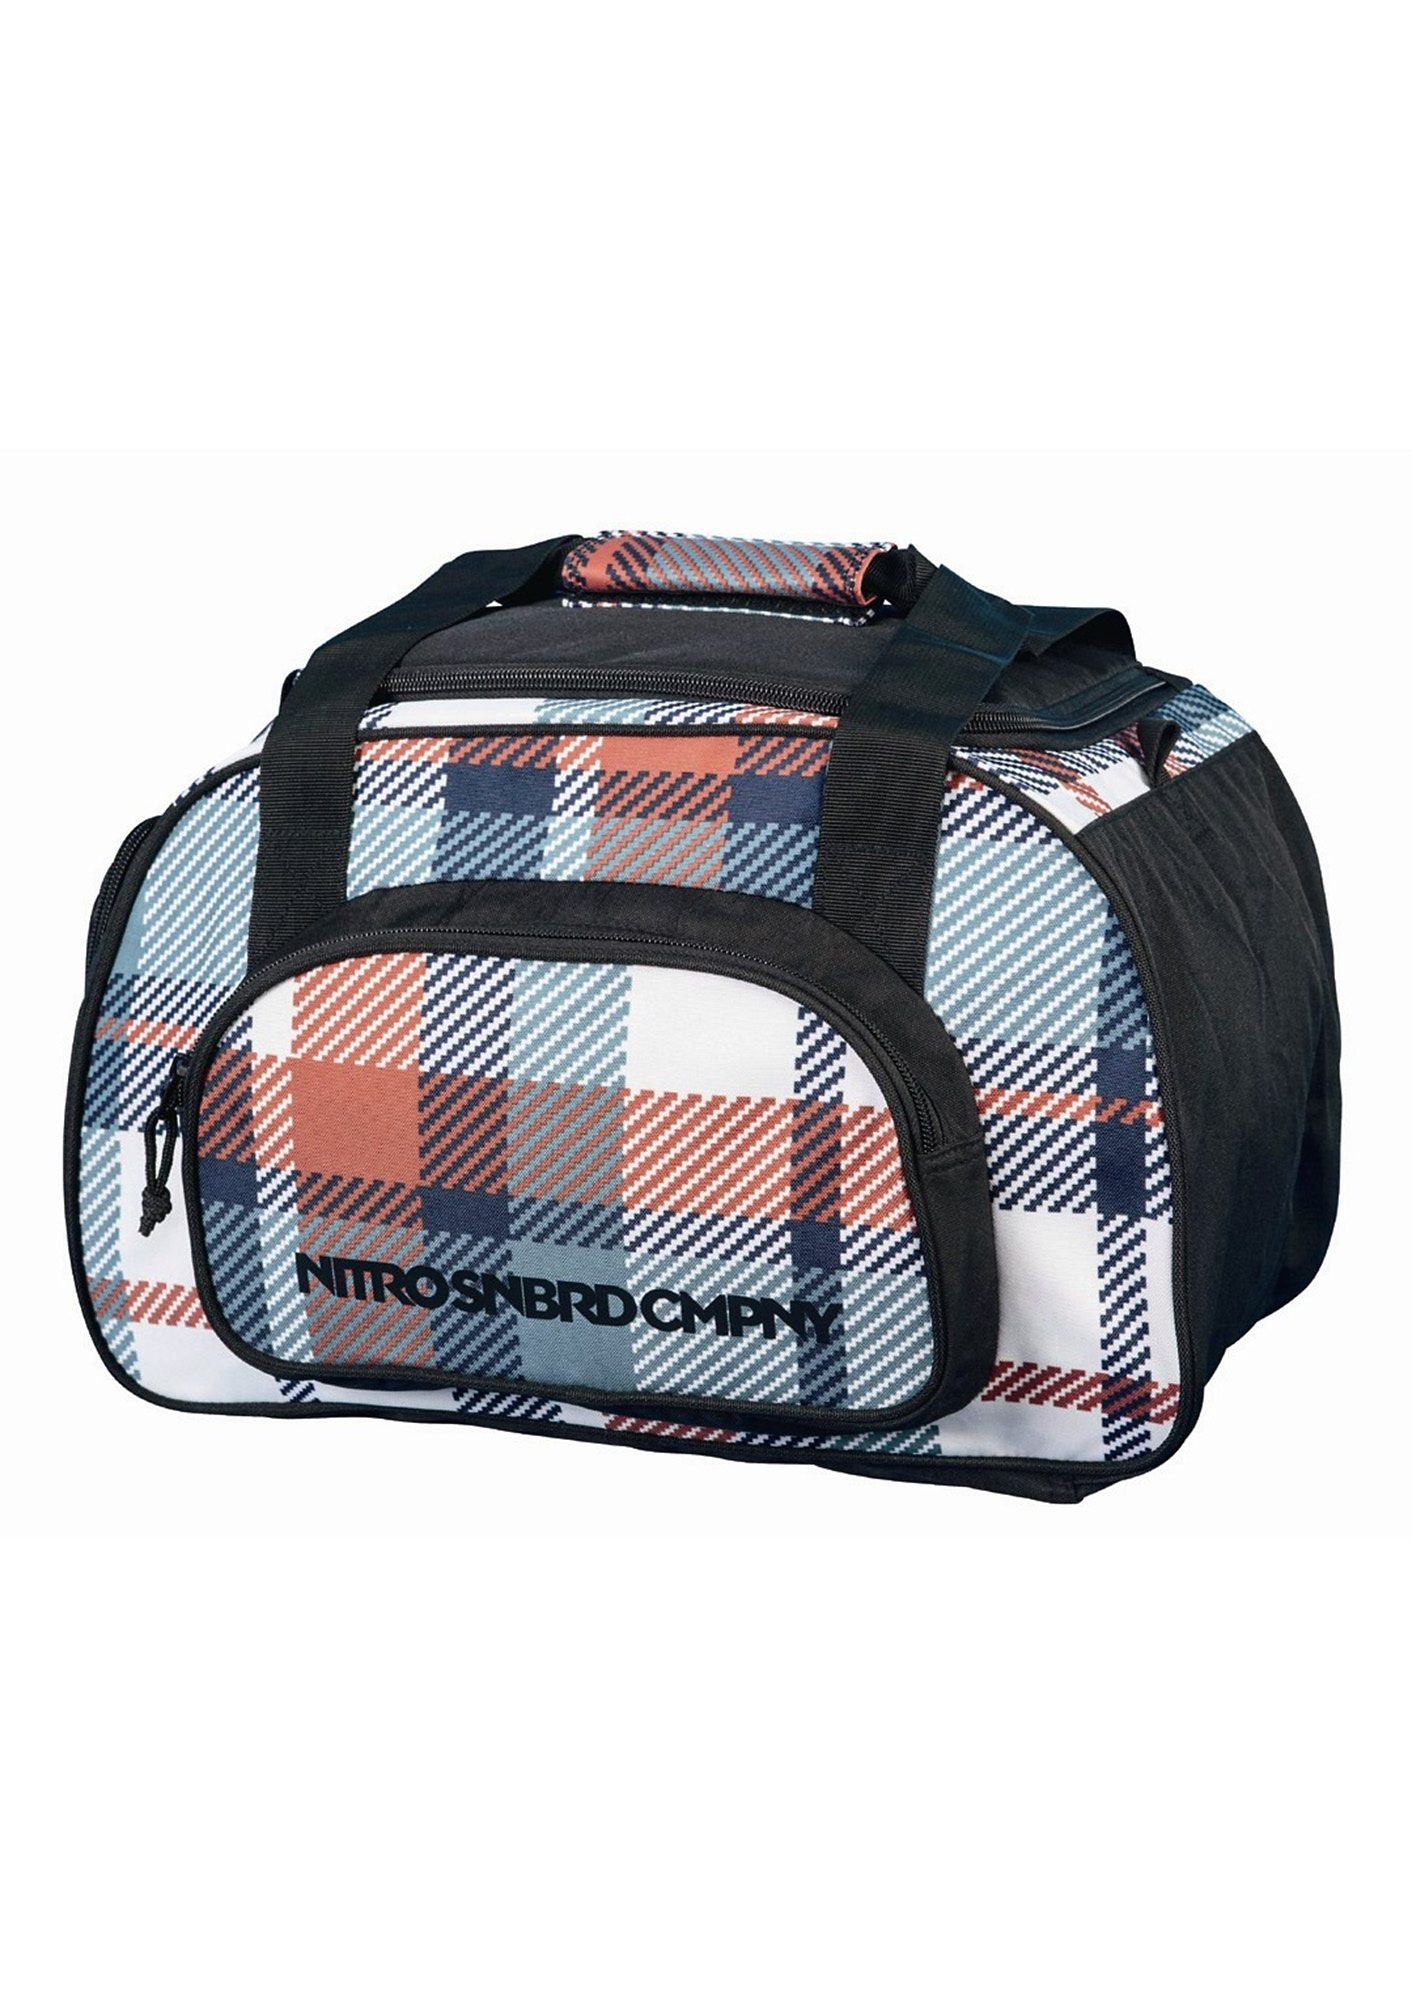 Nitro Reisetasche, »Duffle Bag XS - Meltwater Plaid«